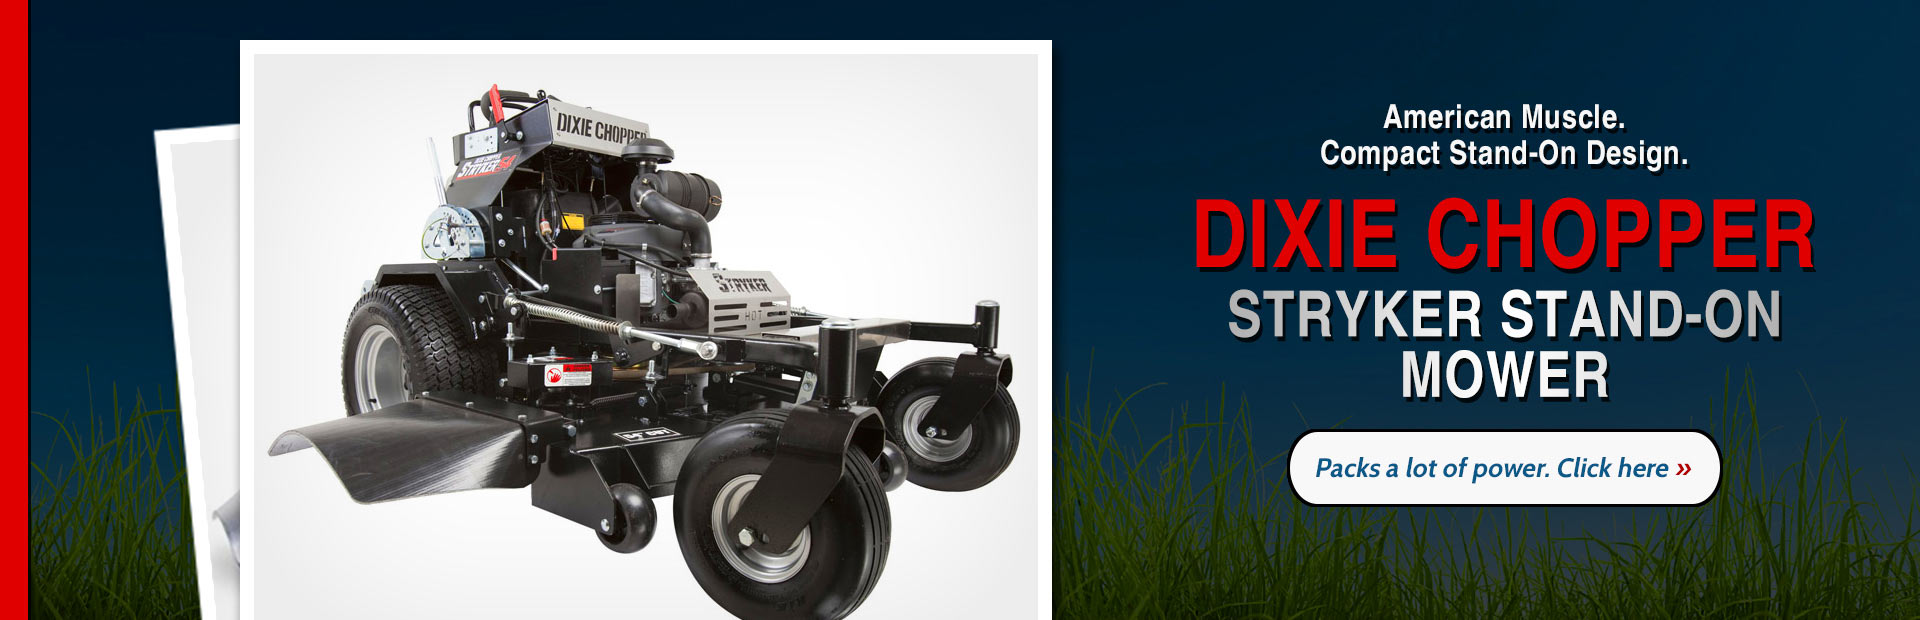 Dixie Chopper Stryker Stand-On Mower: Click here for details.